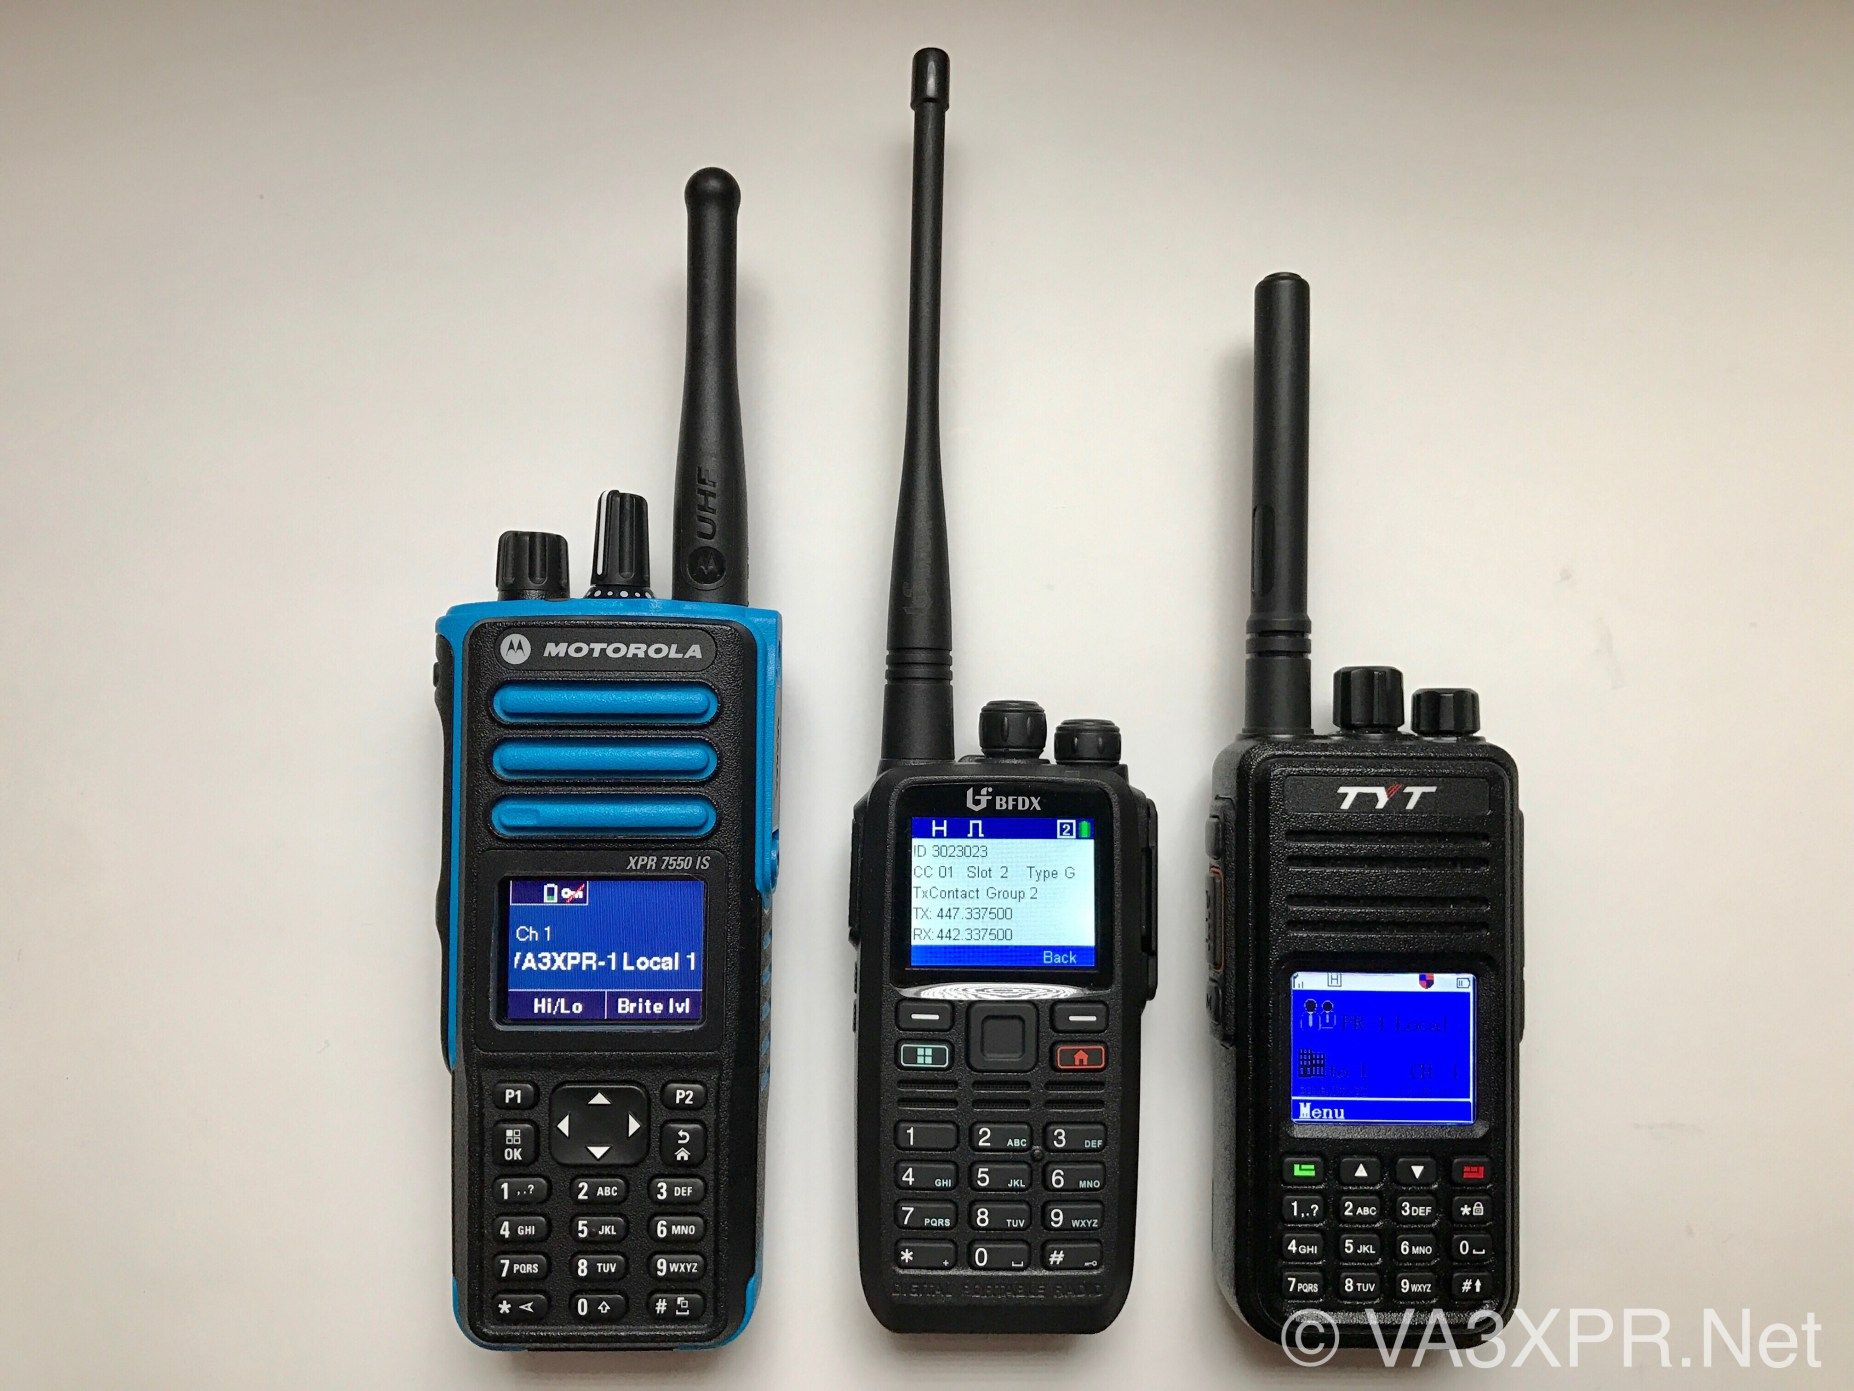 Motorola, XPR7550IS, MOTOTRBO, Connect Systems, CS580, UHF, BFDX